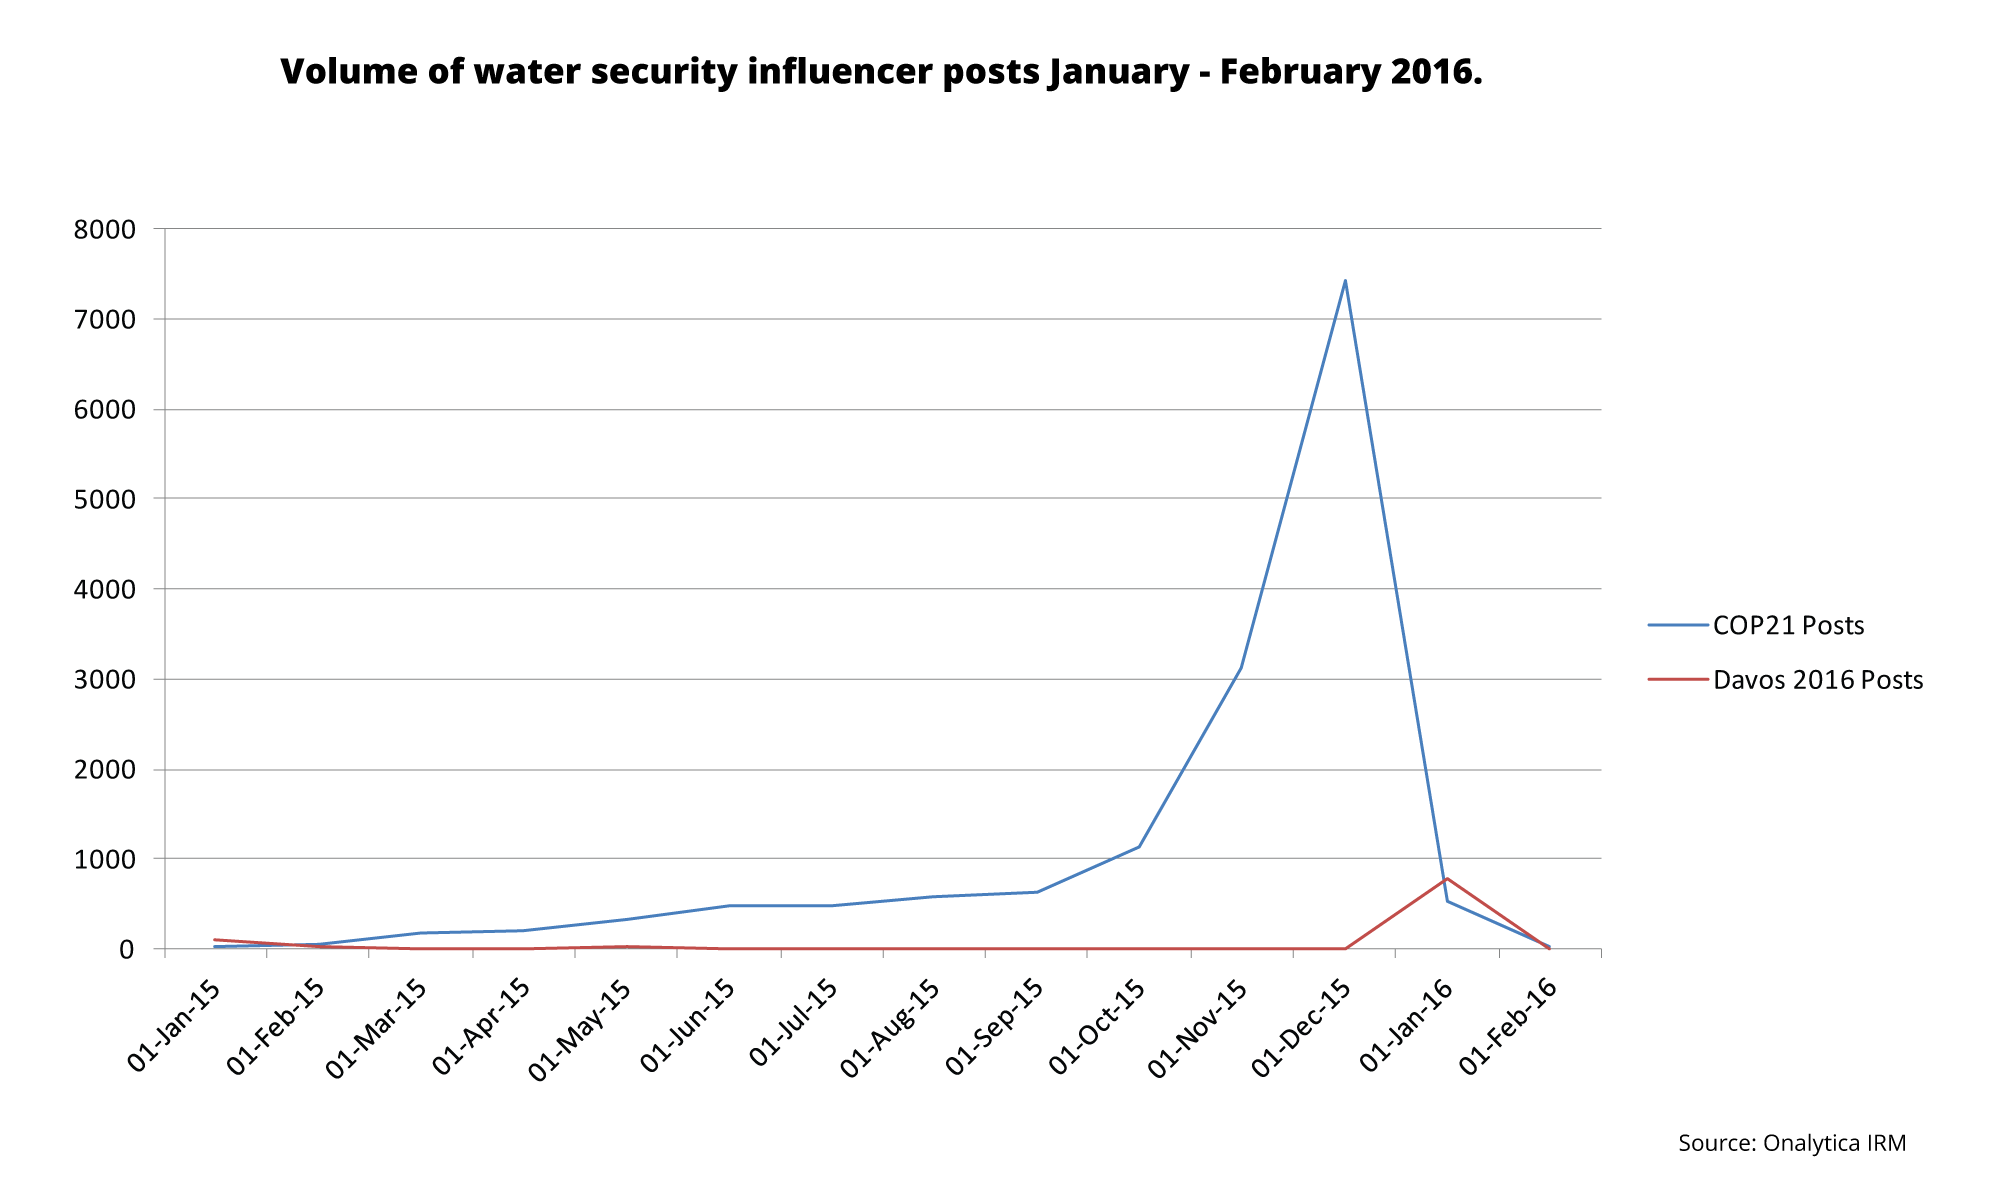 Volume of Water Security Influencer Posts on COP21 and Davos2016